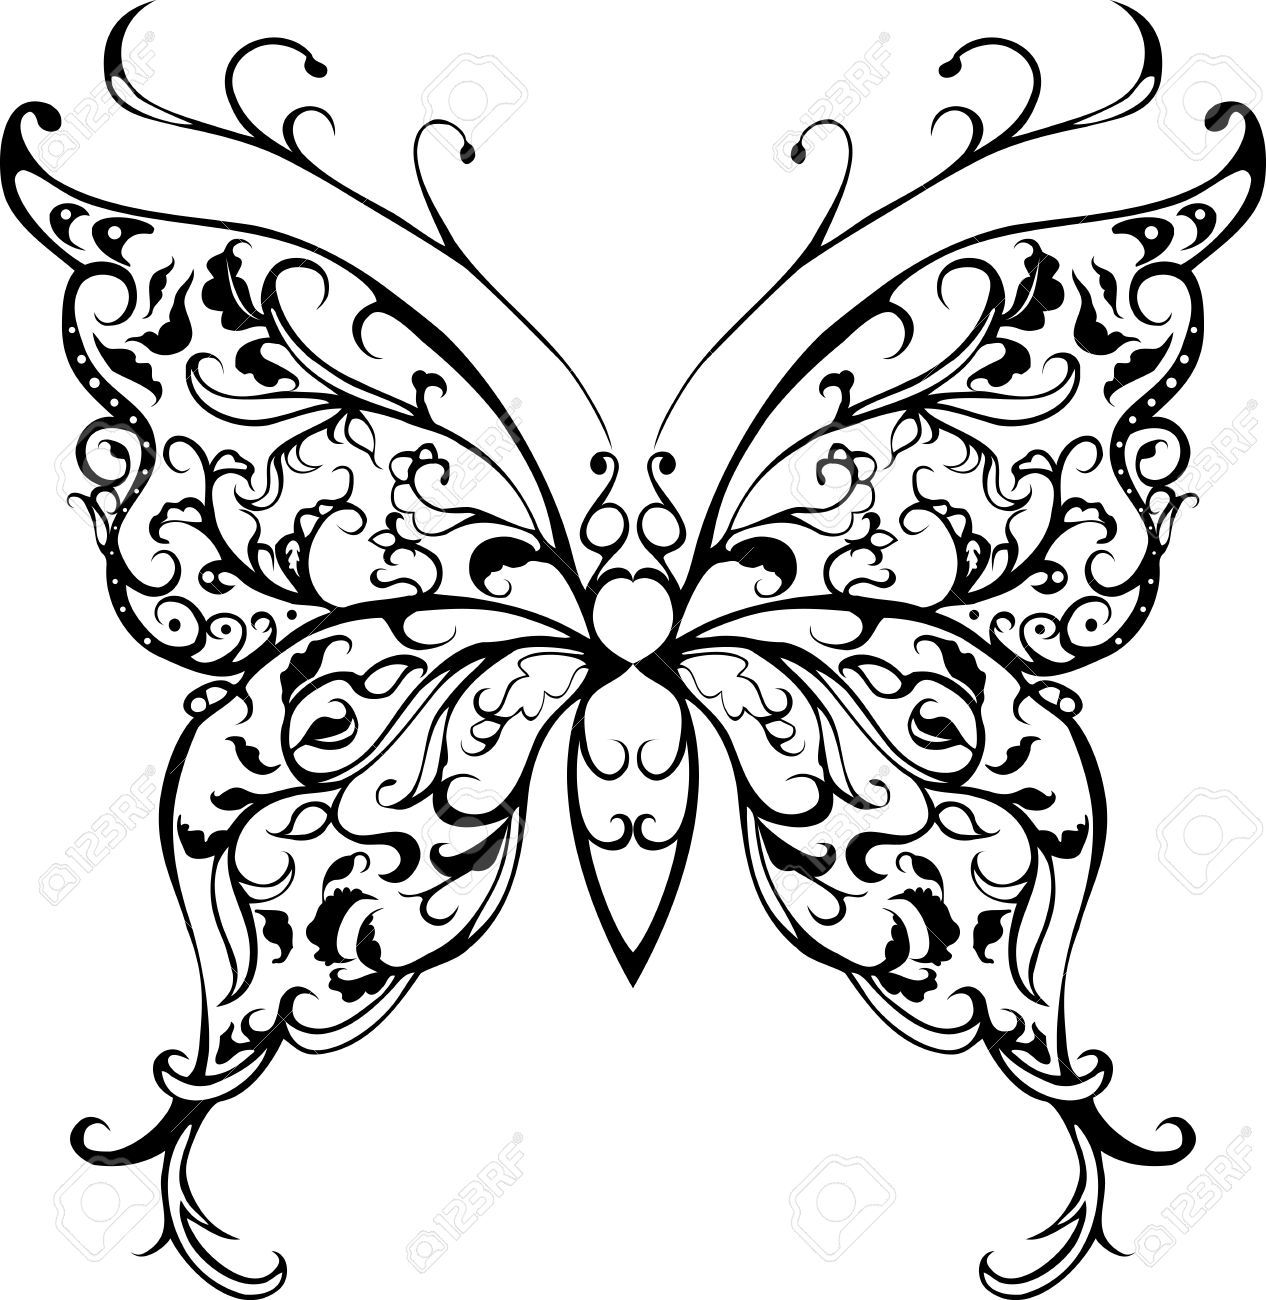 Lace clipart butterfly. Pattern decorative black on